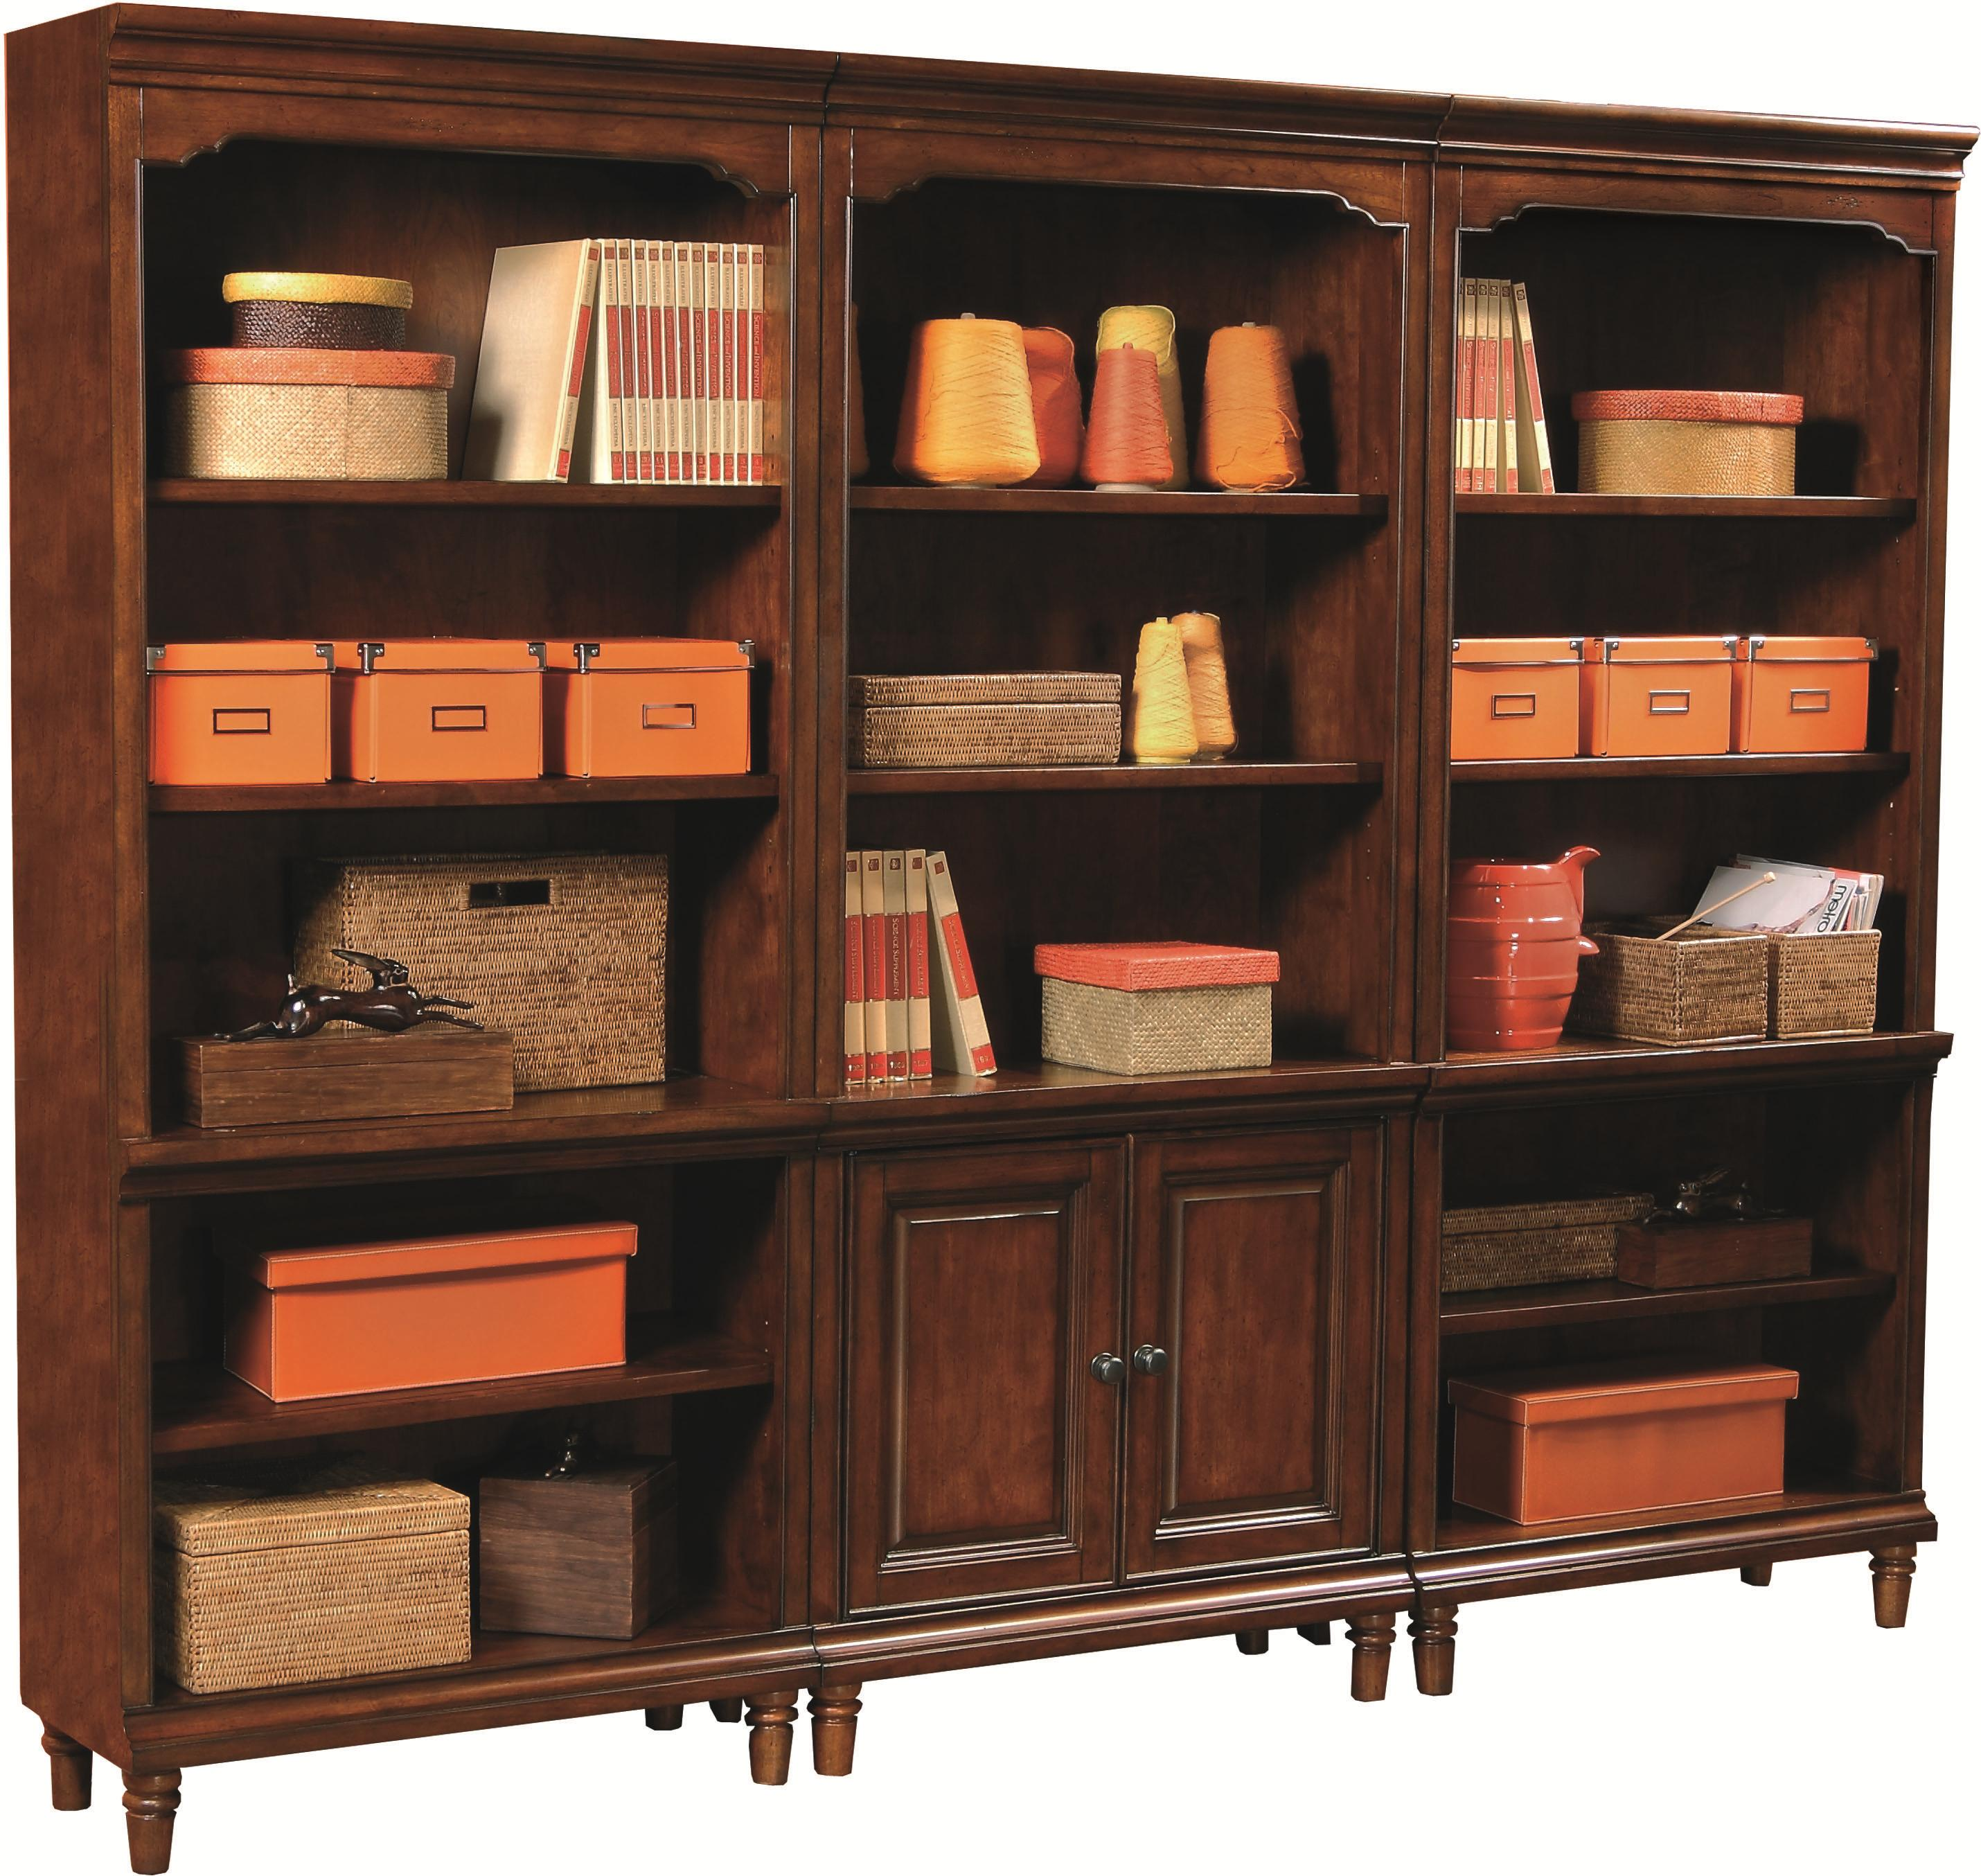 Aspenhome Villager 3 Bookcase Set - Item Number: I20-332-CHY+2x333